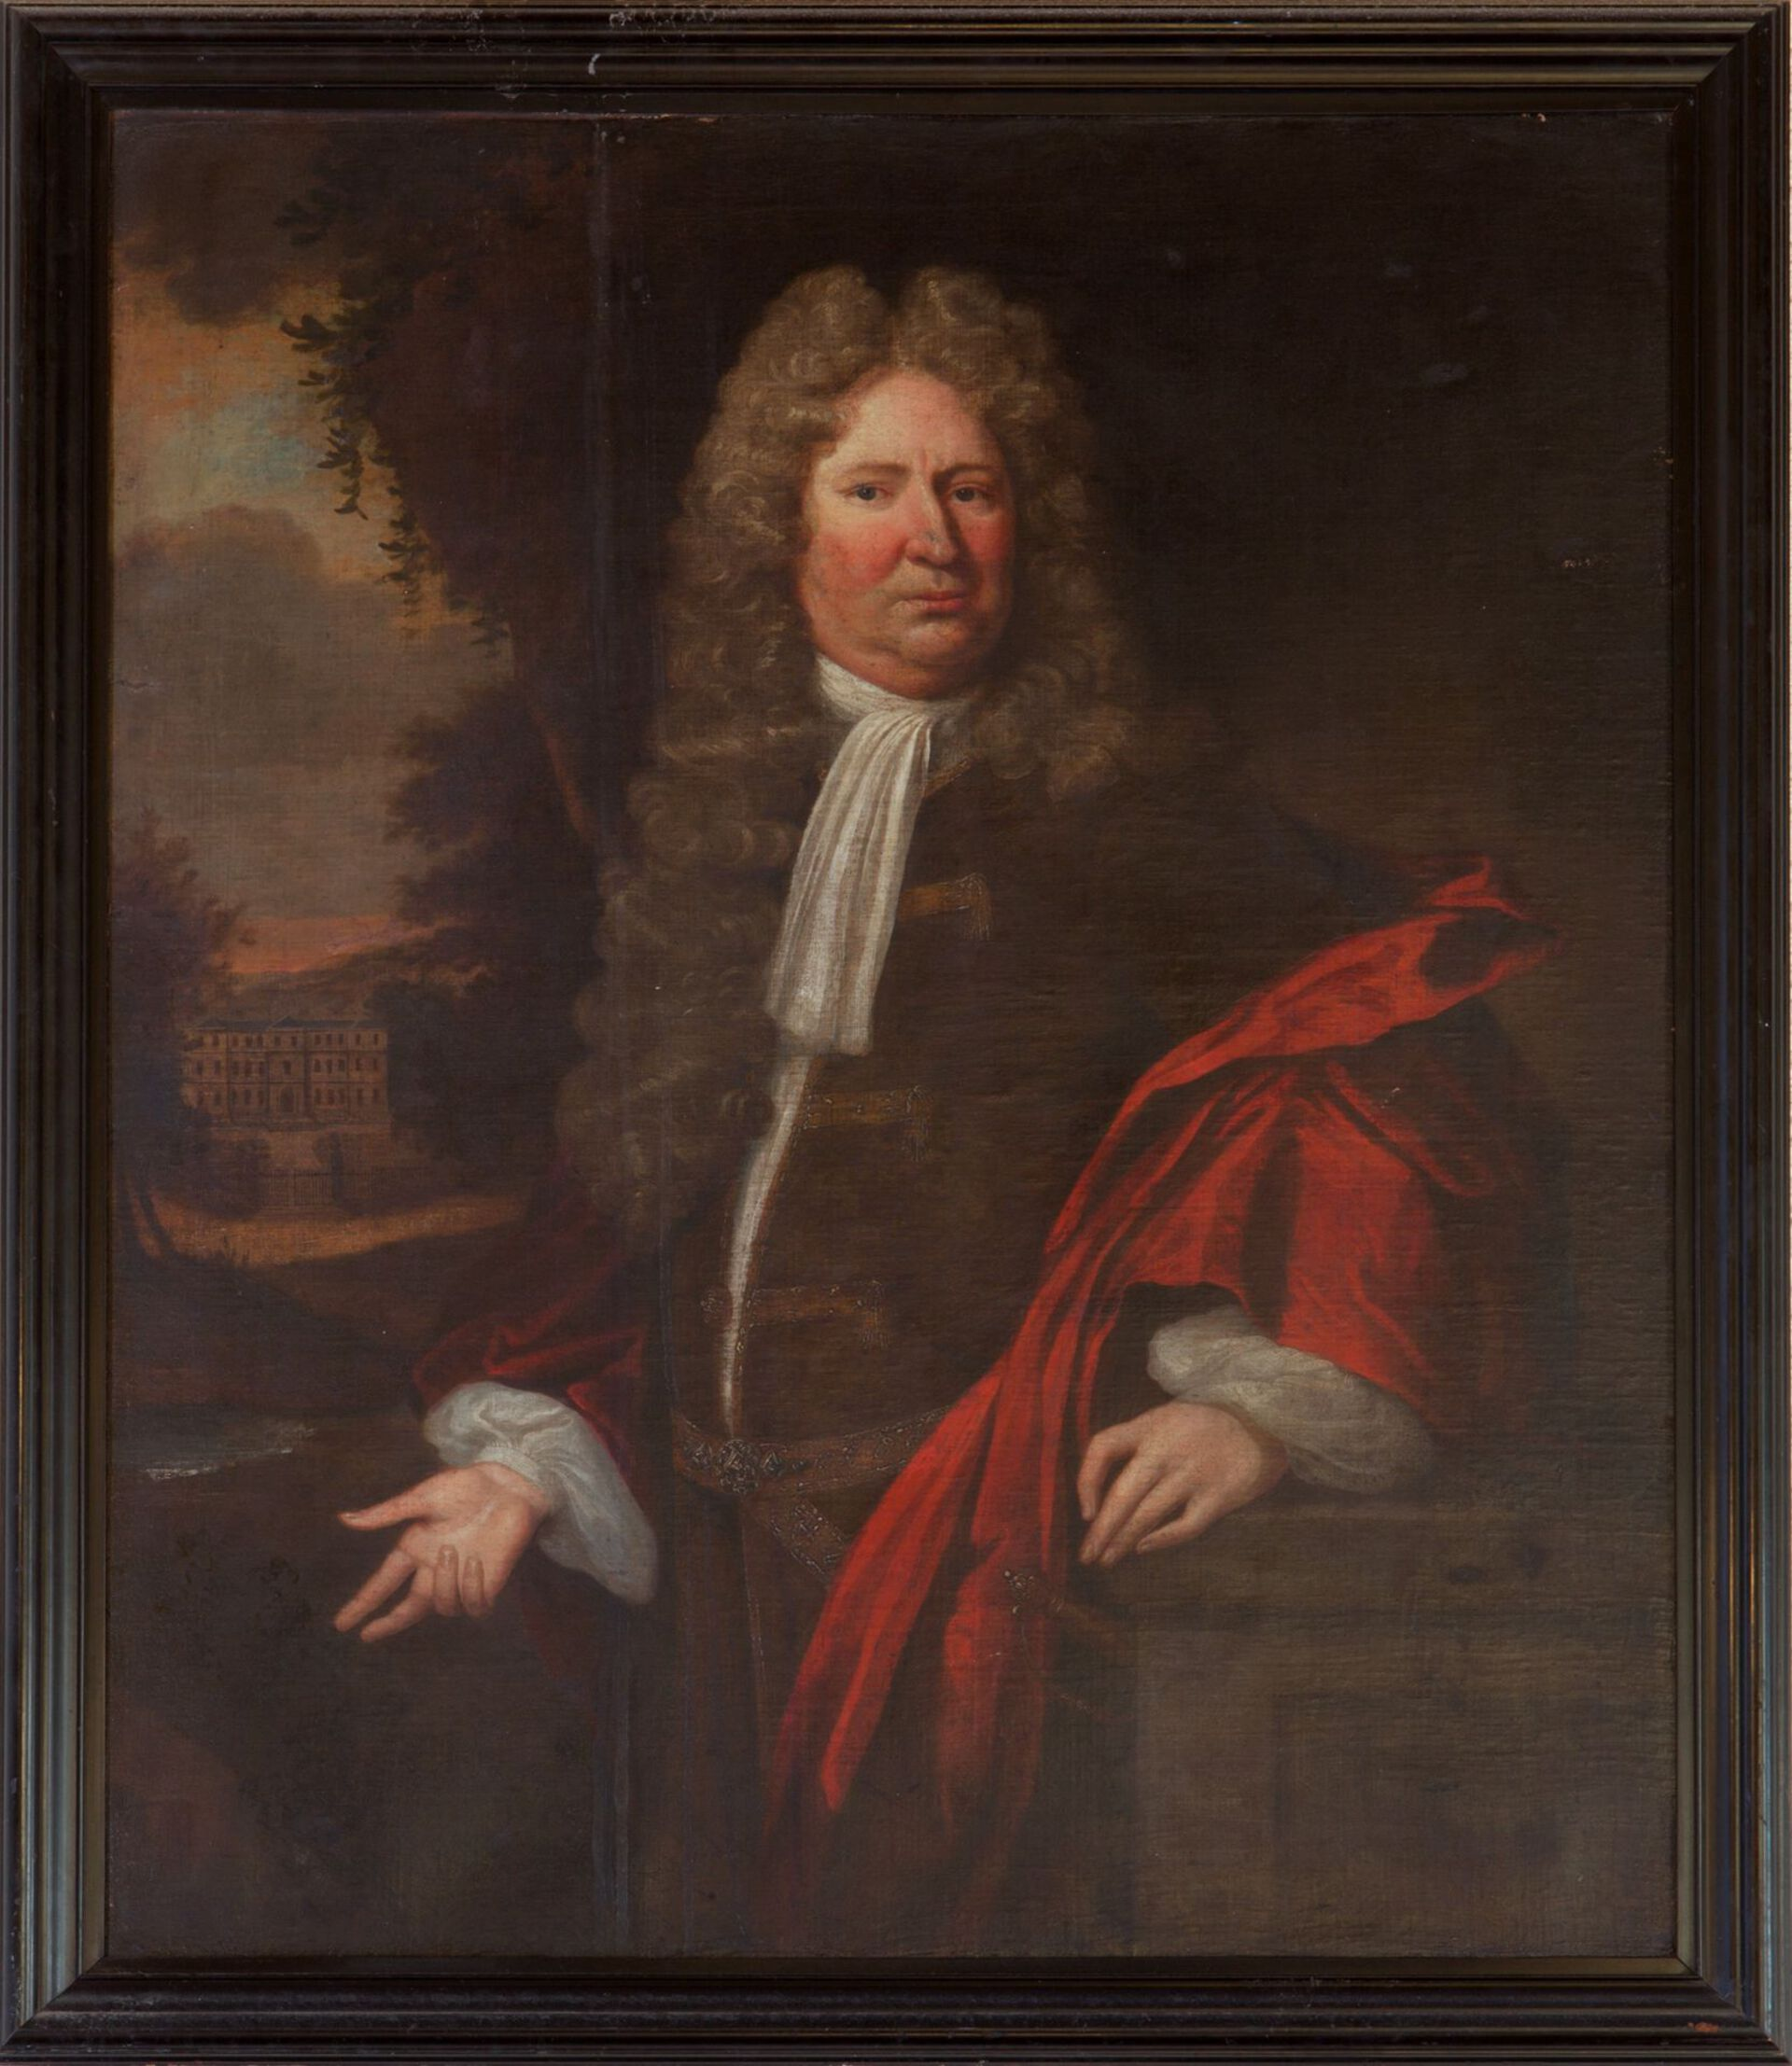 Possibly by Michael Dahl, Elihu Yale, British, 1649–1721, eighteenth century, oil on canvas, Gift of Joseph Verner Reed, BA 1926; and Joseph Verner Reed, Jr., BA 1959